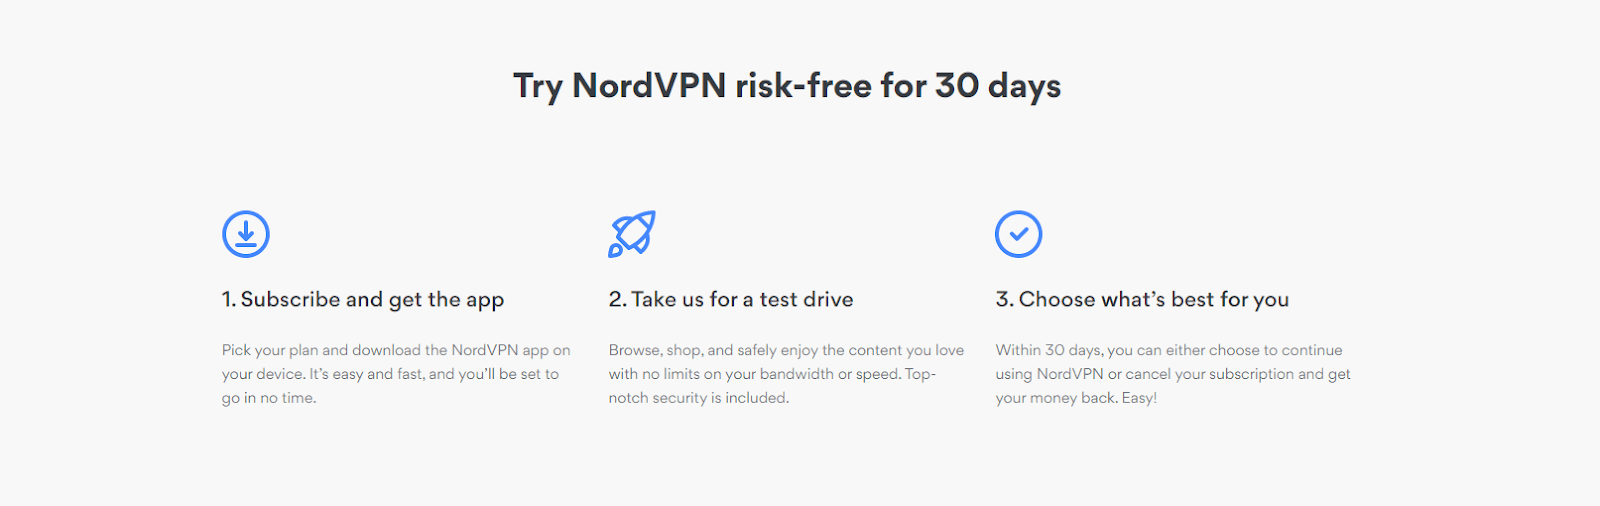 Try Nord VPN risk-free for 30 days